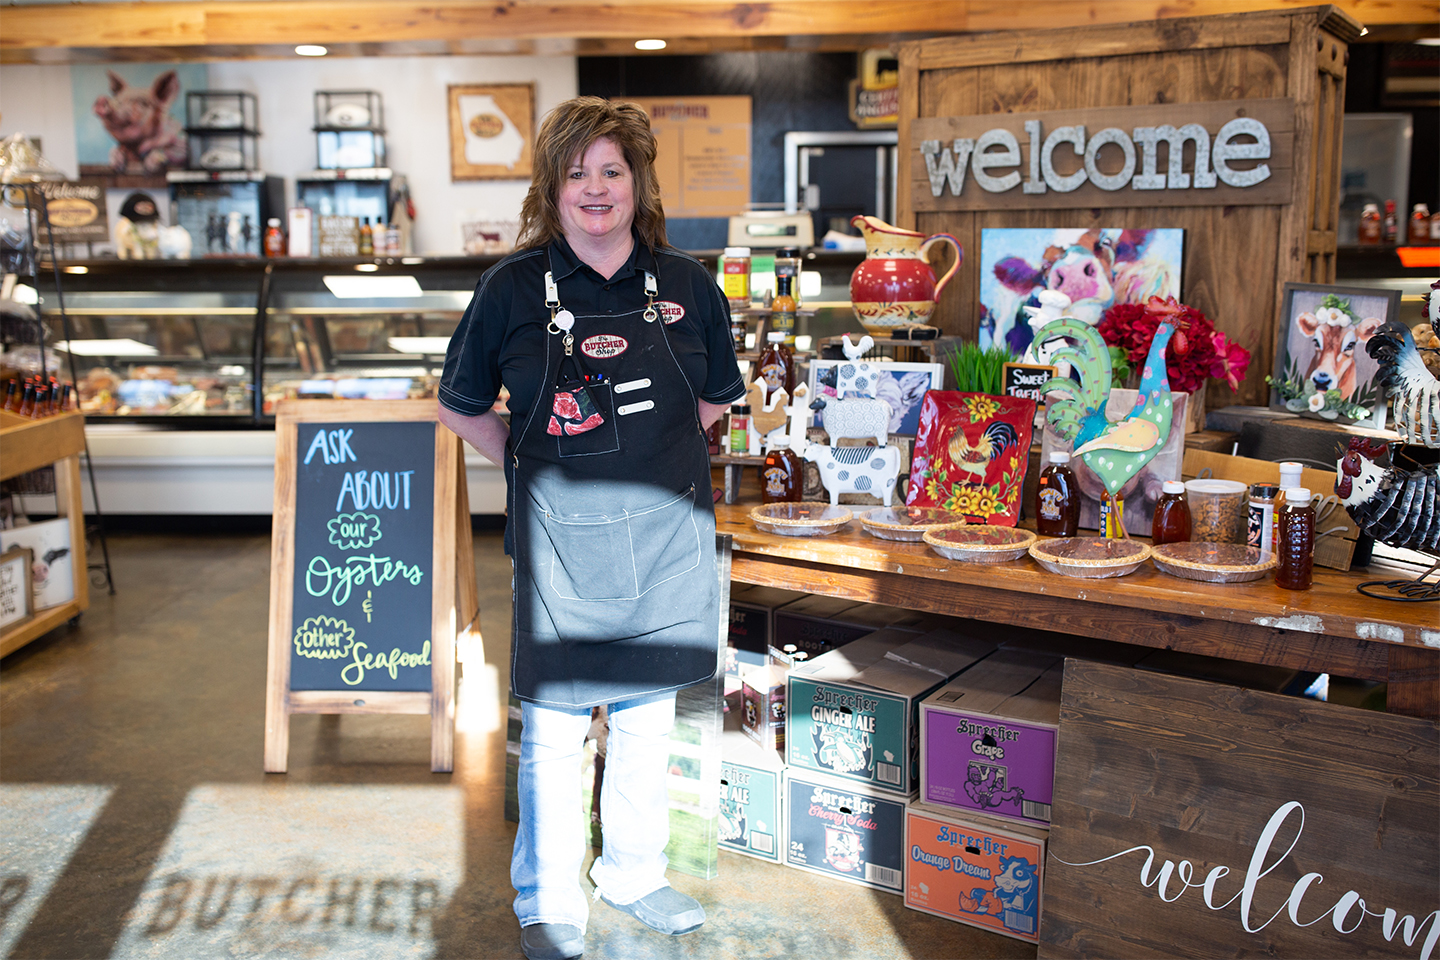 The Butcher Shop owner Amy Dean stands in her store